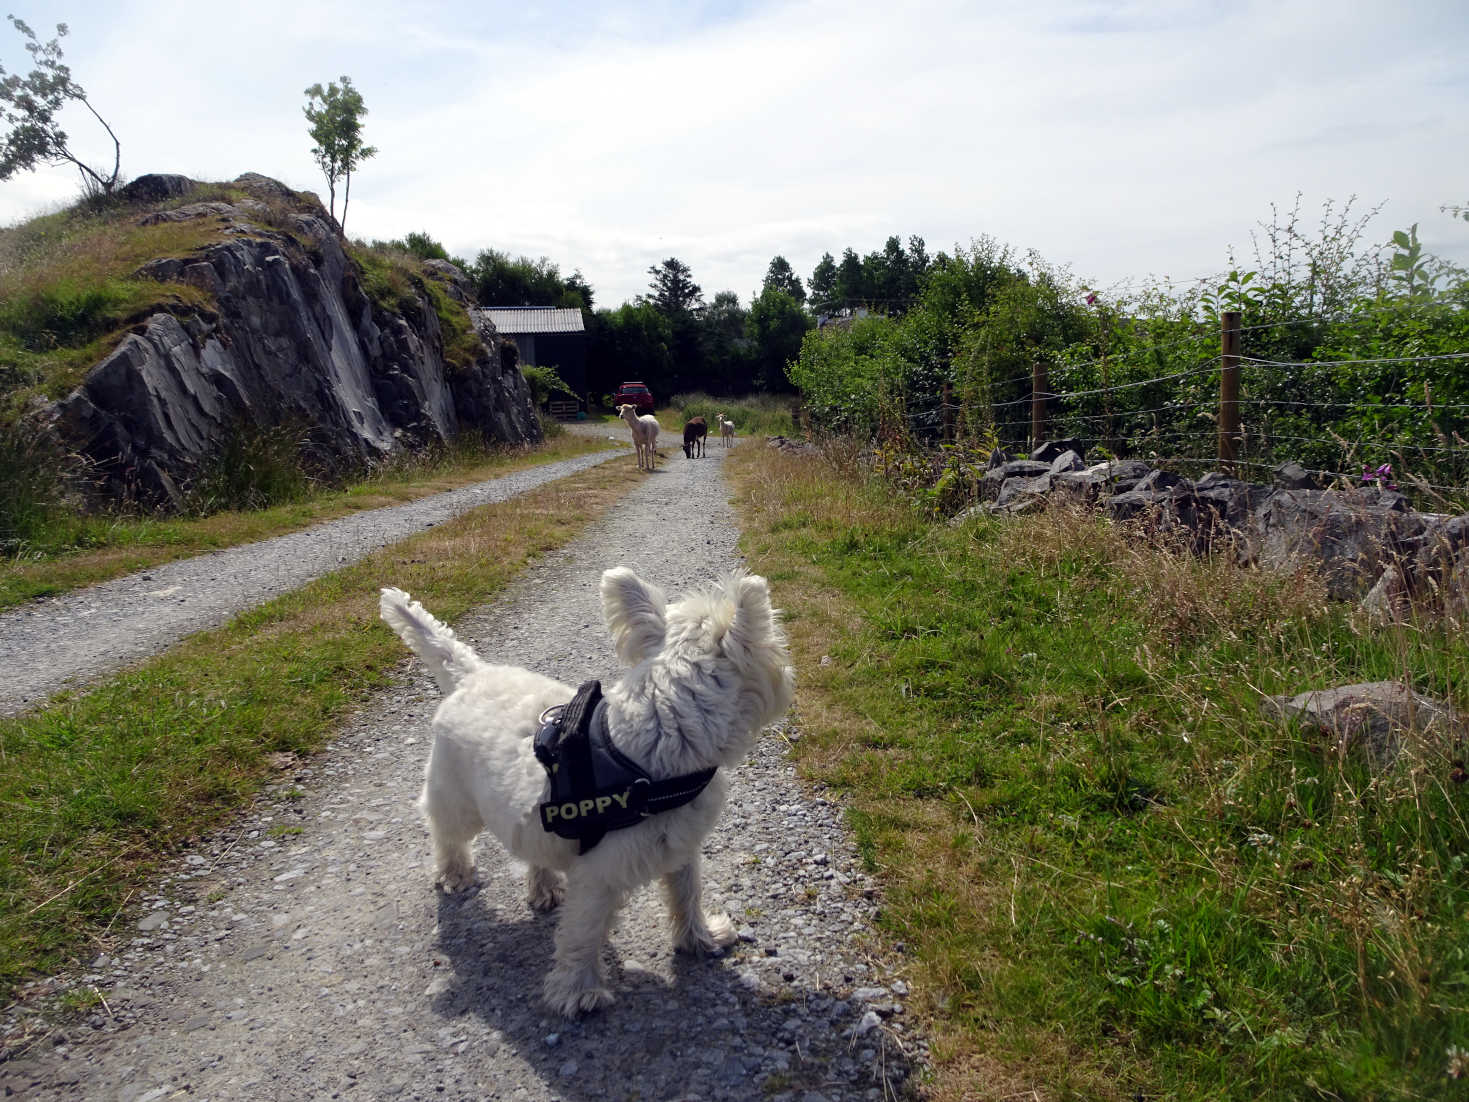 Poppy the westie keeps an eye on the sheep gang